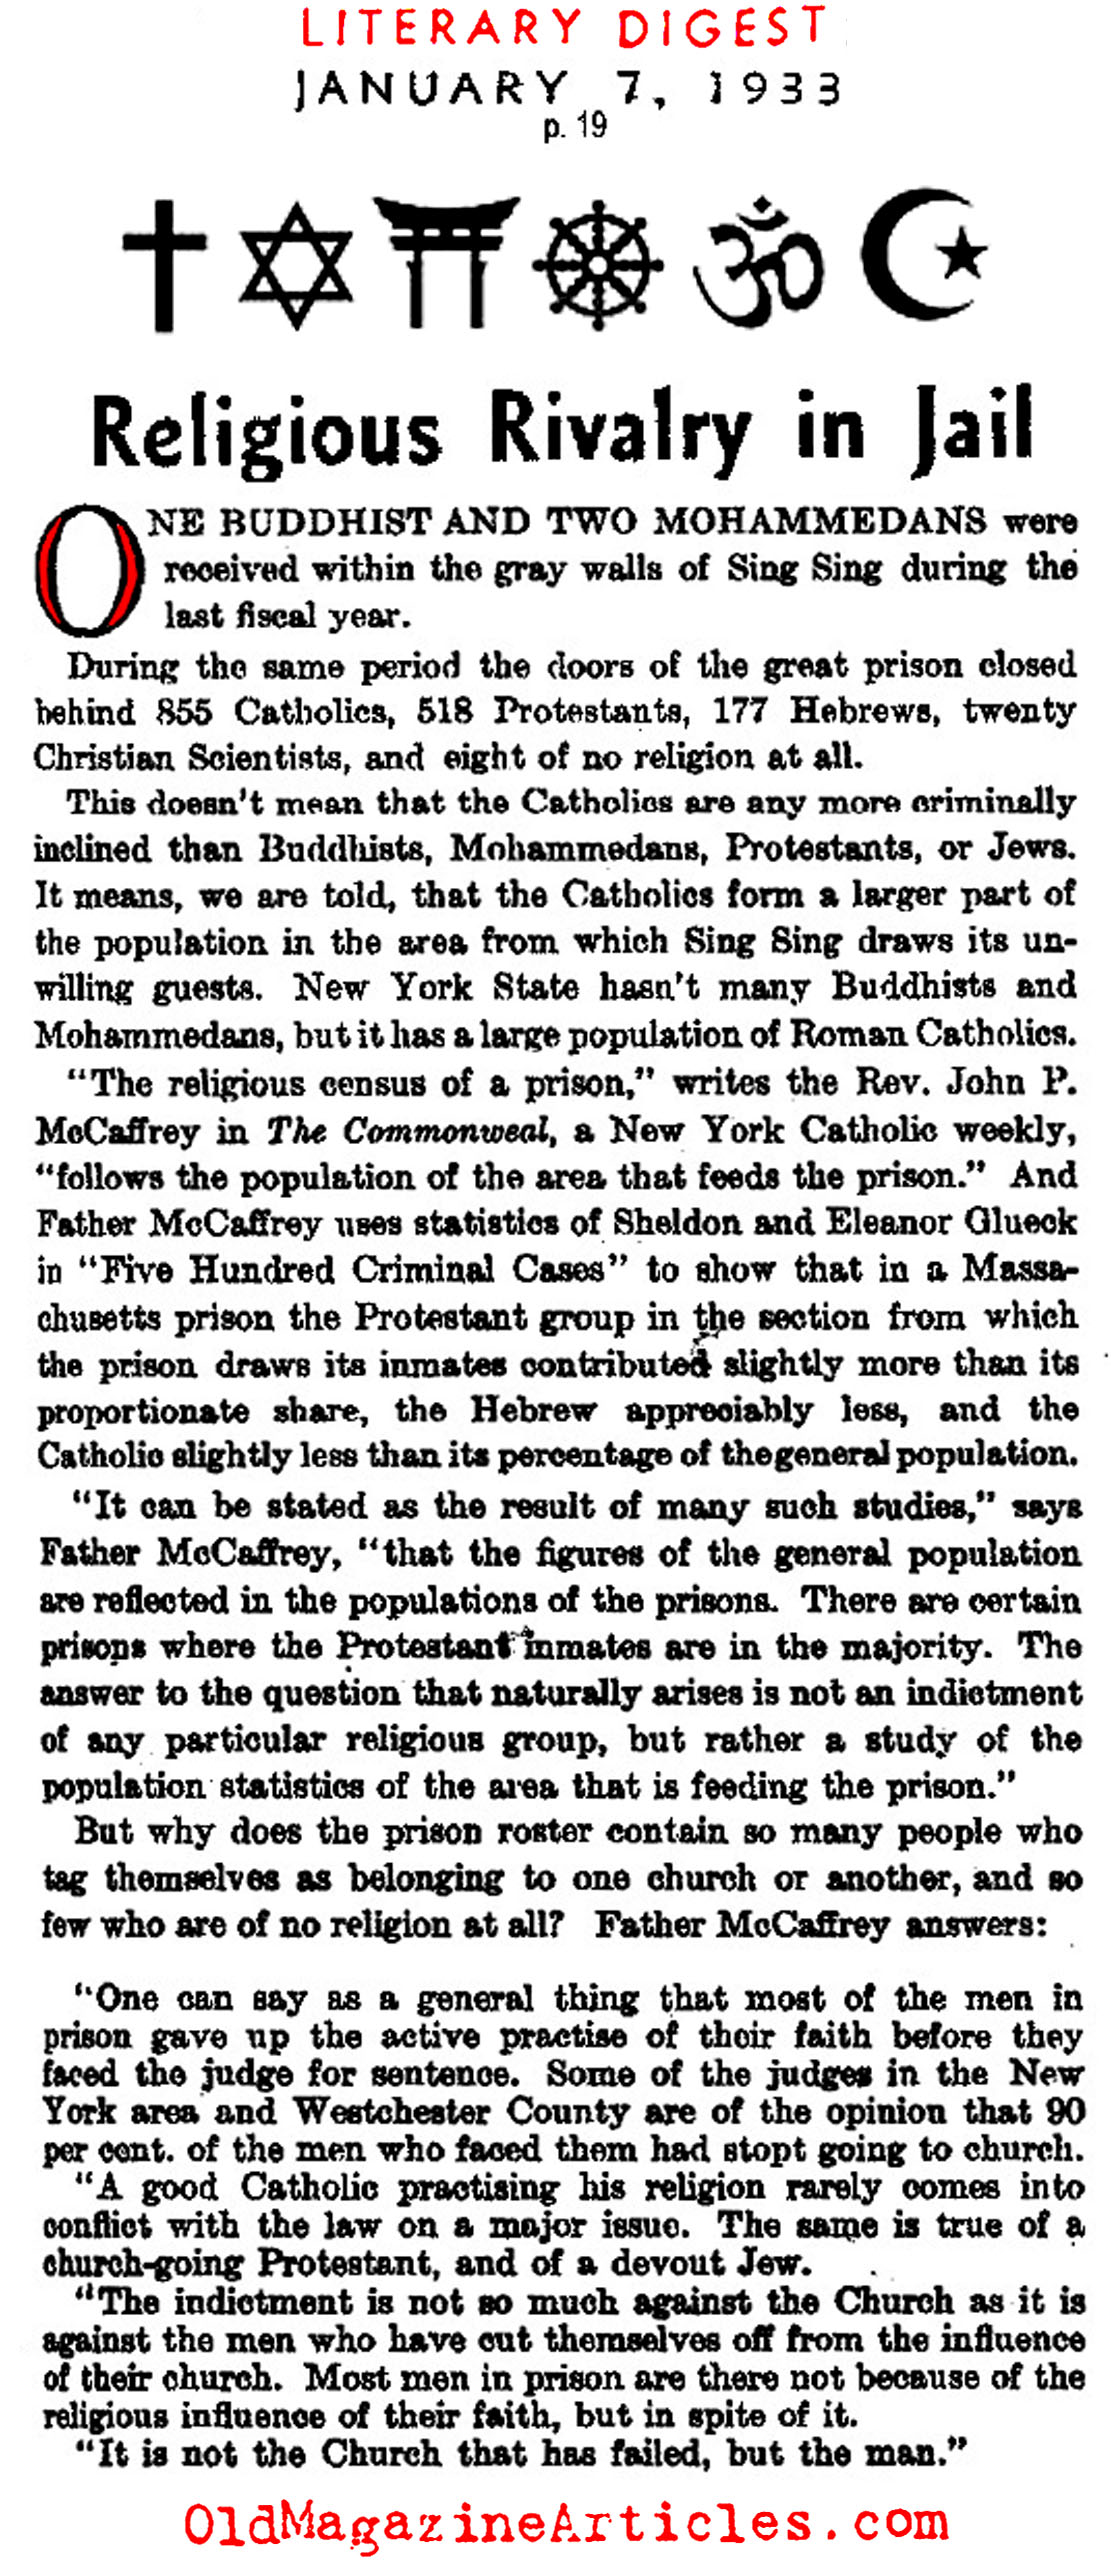 Religions at Sing Sing Prison (Literary Digest, 1933)